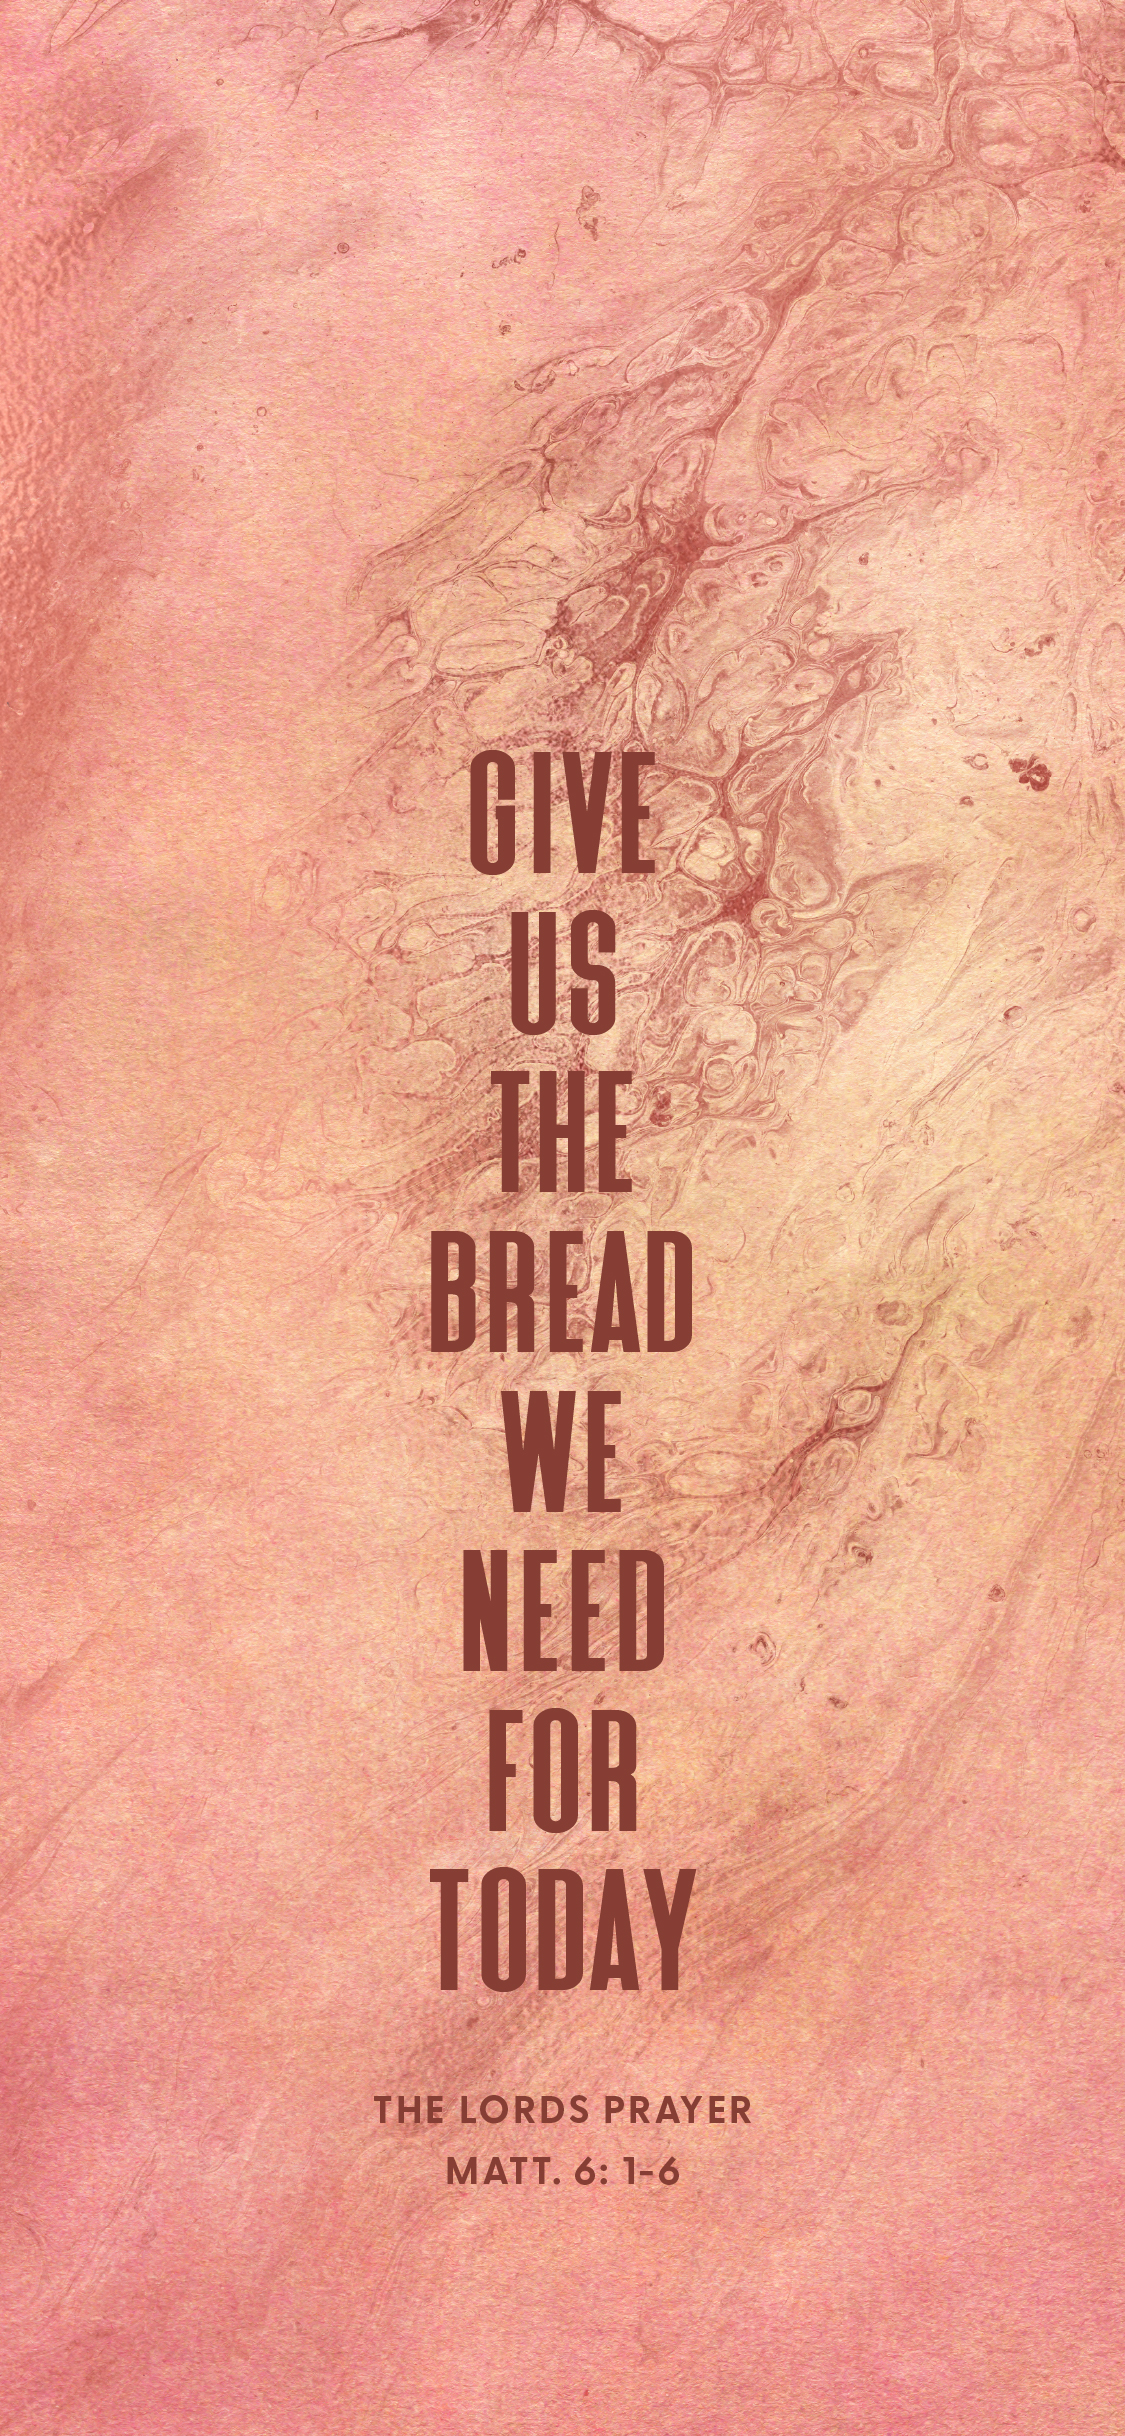 JH_GIVEUSTHEBREAD_4